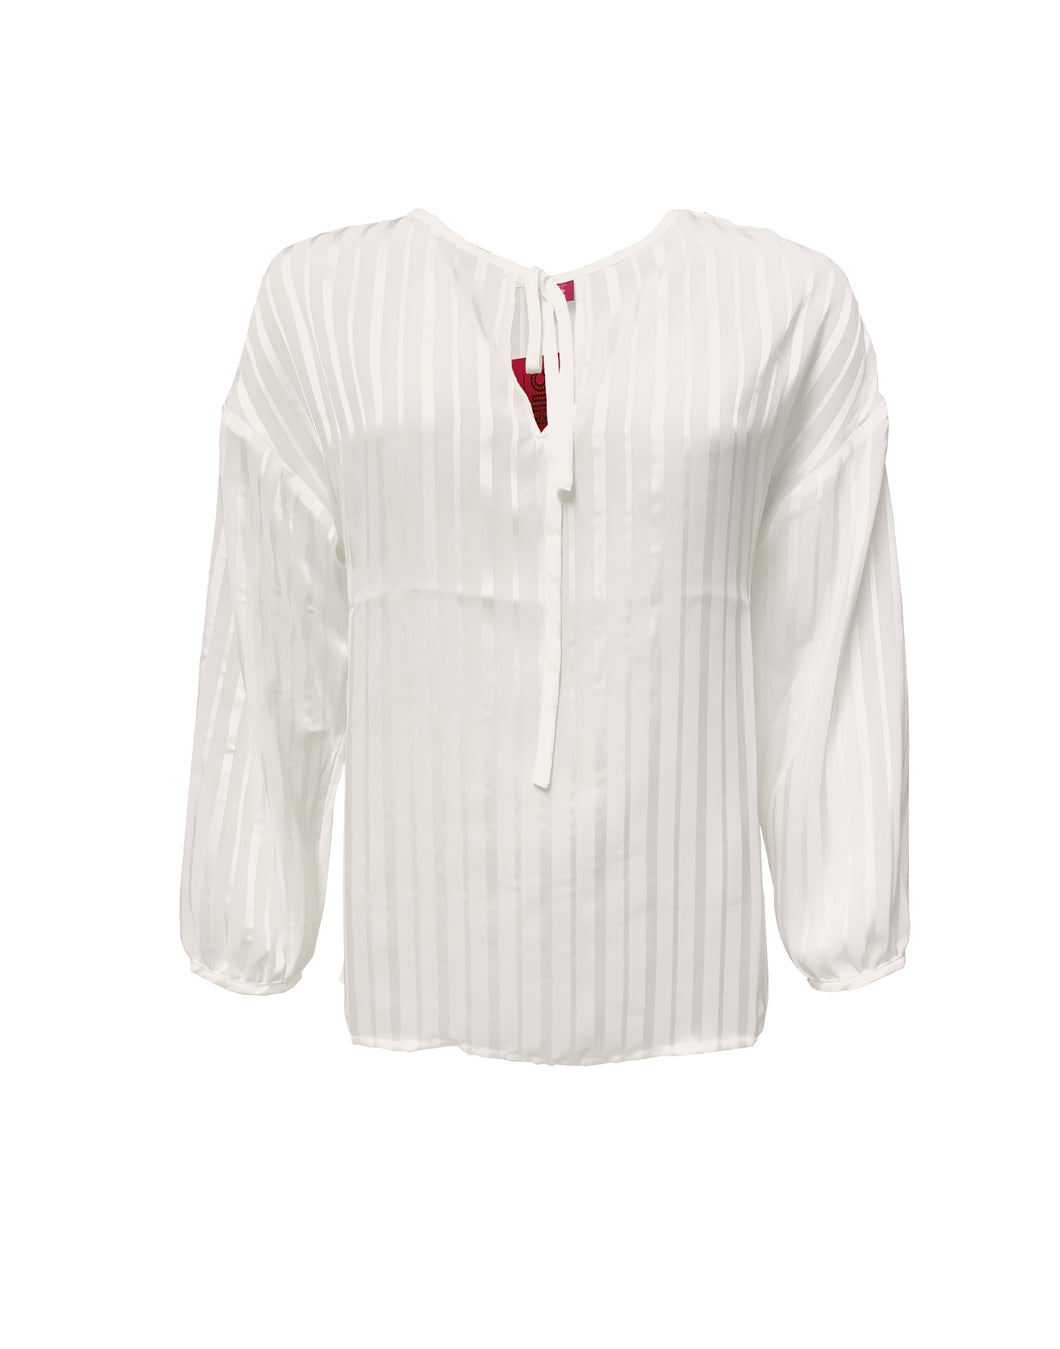 Sapo Blouse White